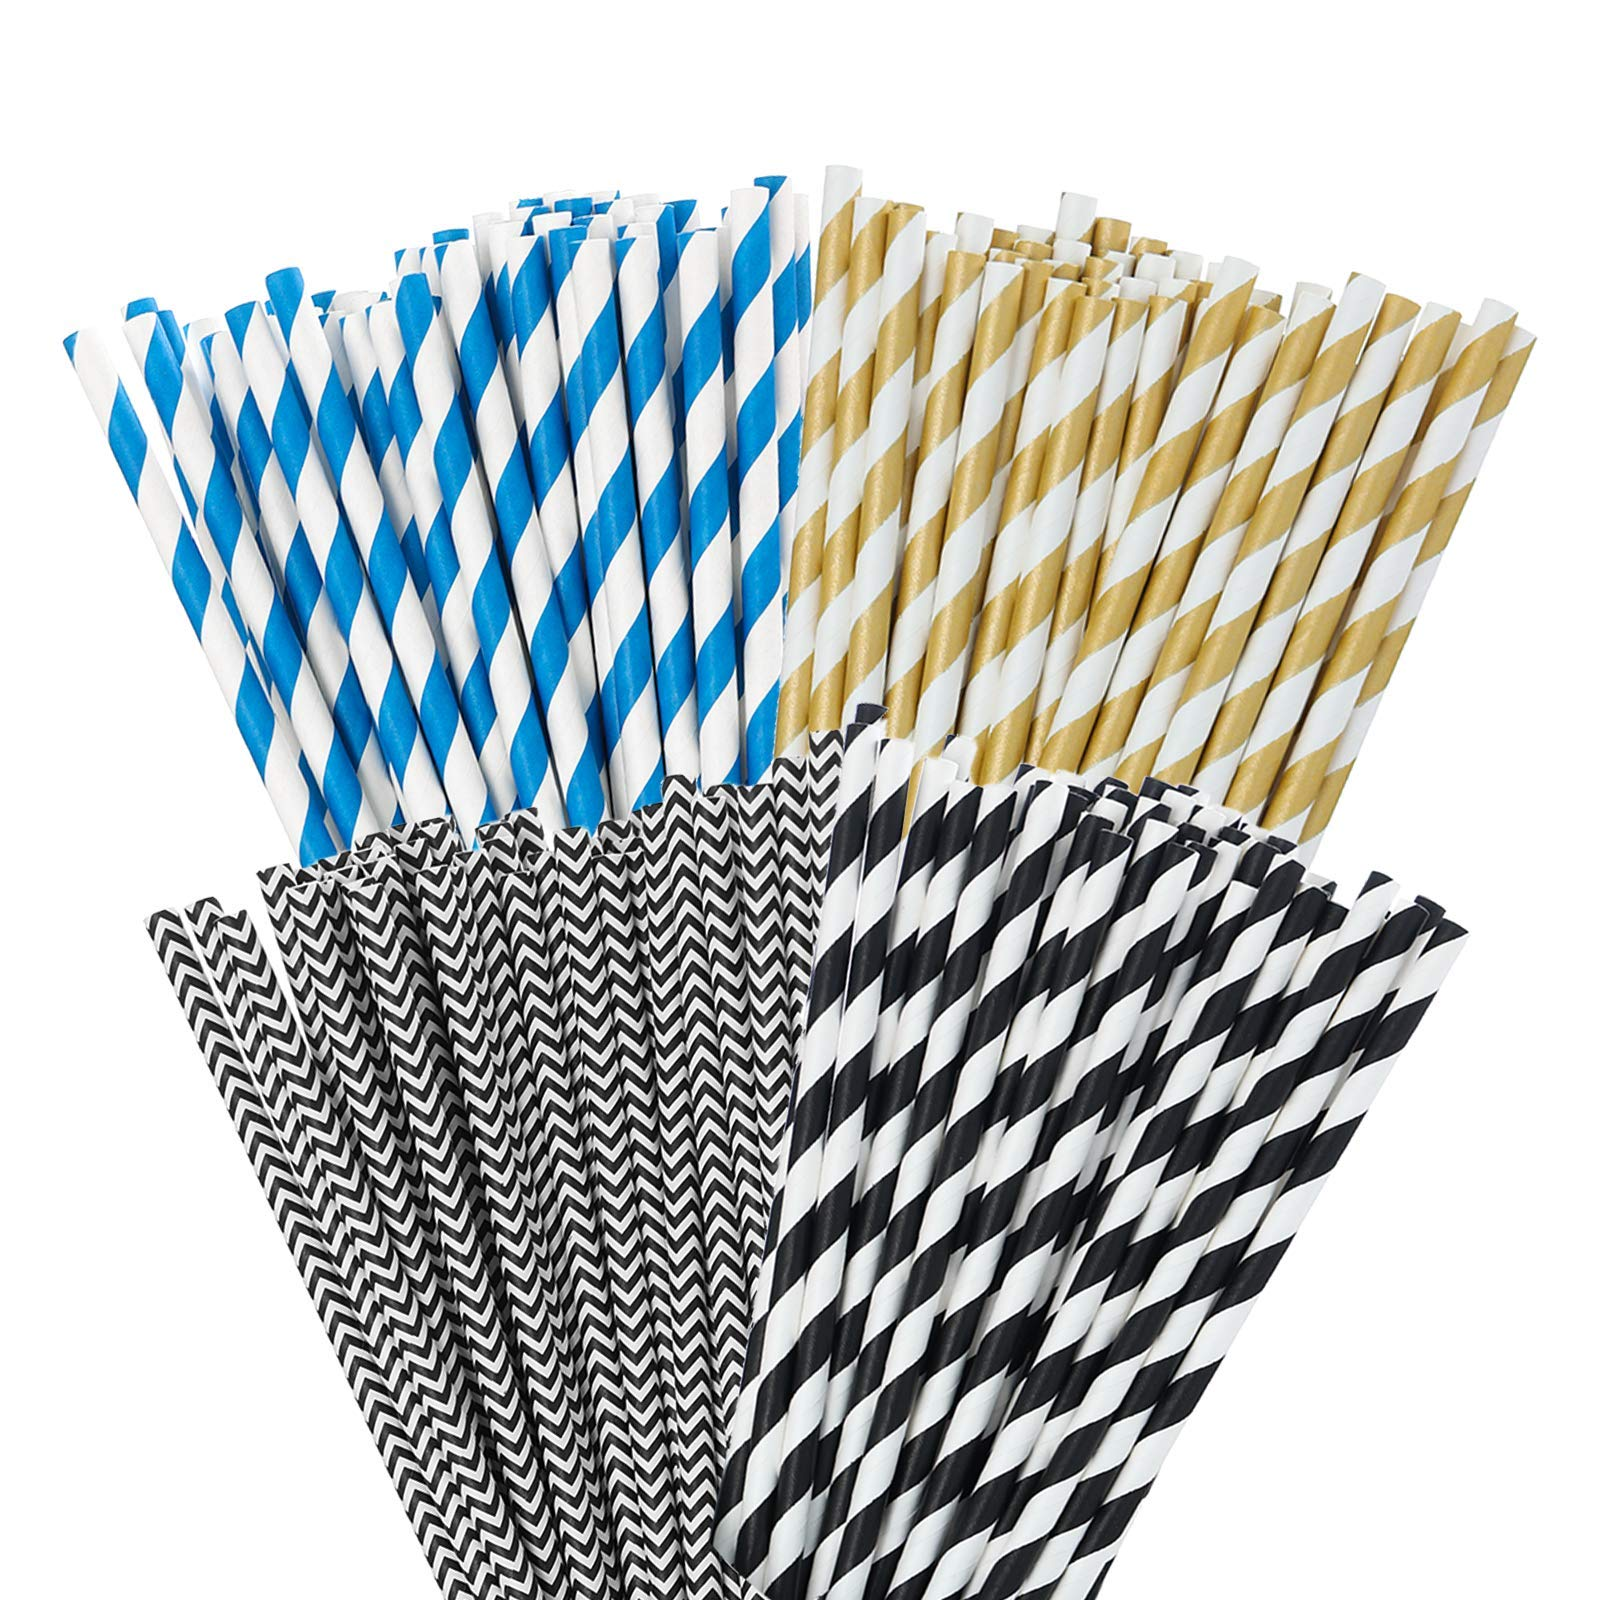 ECOCONUT Paper Straws 200 Pack -Paper Drinking Straws Disposable& Eco-Friendly Straw Biodegradable